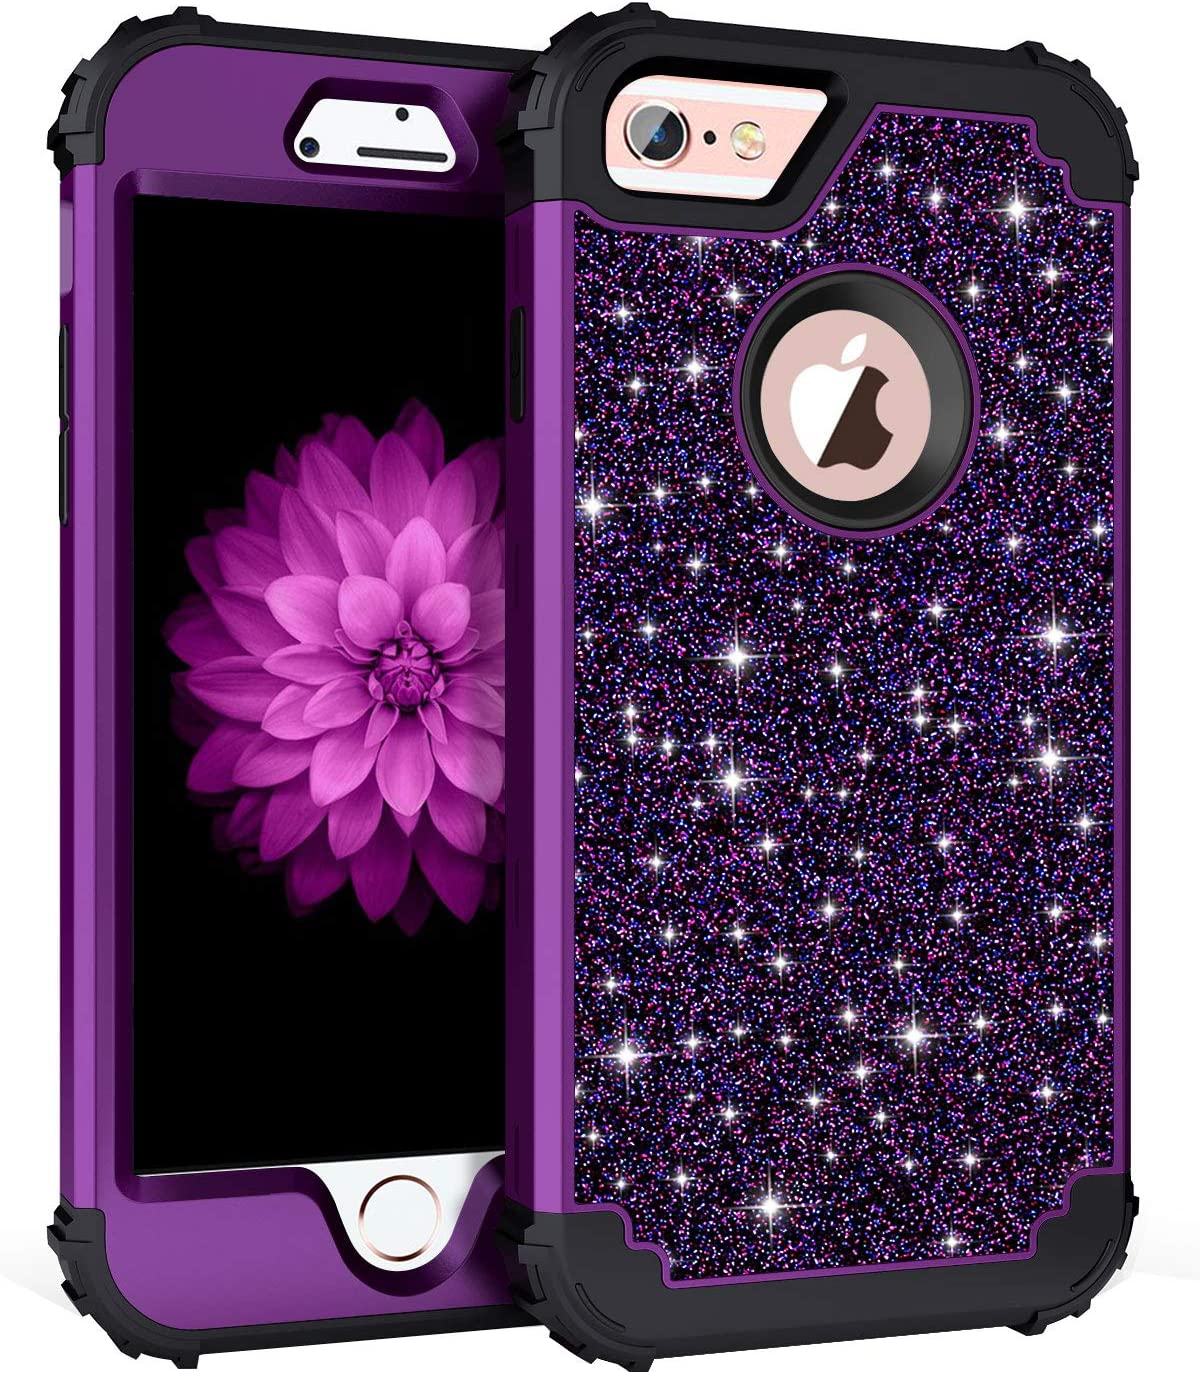 Casetego Compatible with iPhone 6S Plus Case,iPhone 6 Plus Case,Glitter Sparkle Bling Three Layer Heavy Duty Hybrid Sturdy Shockproof Protective Cover Case for Apple iPhone 6 Plus/6S Plus,Shiny Purple